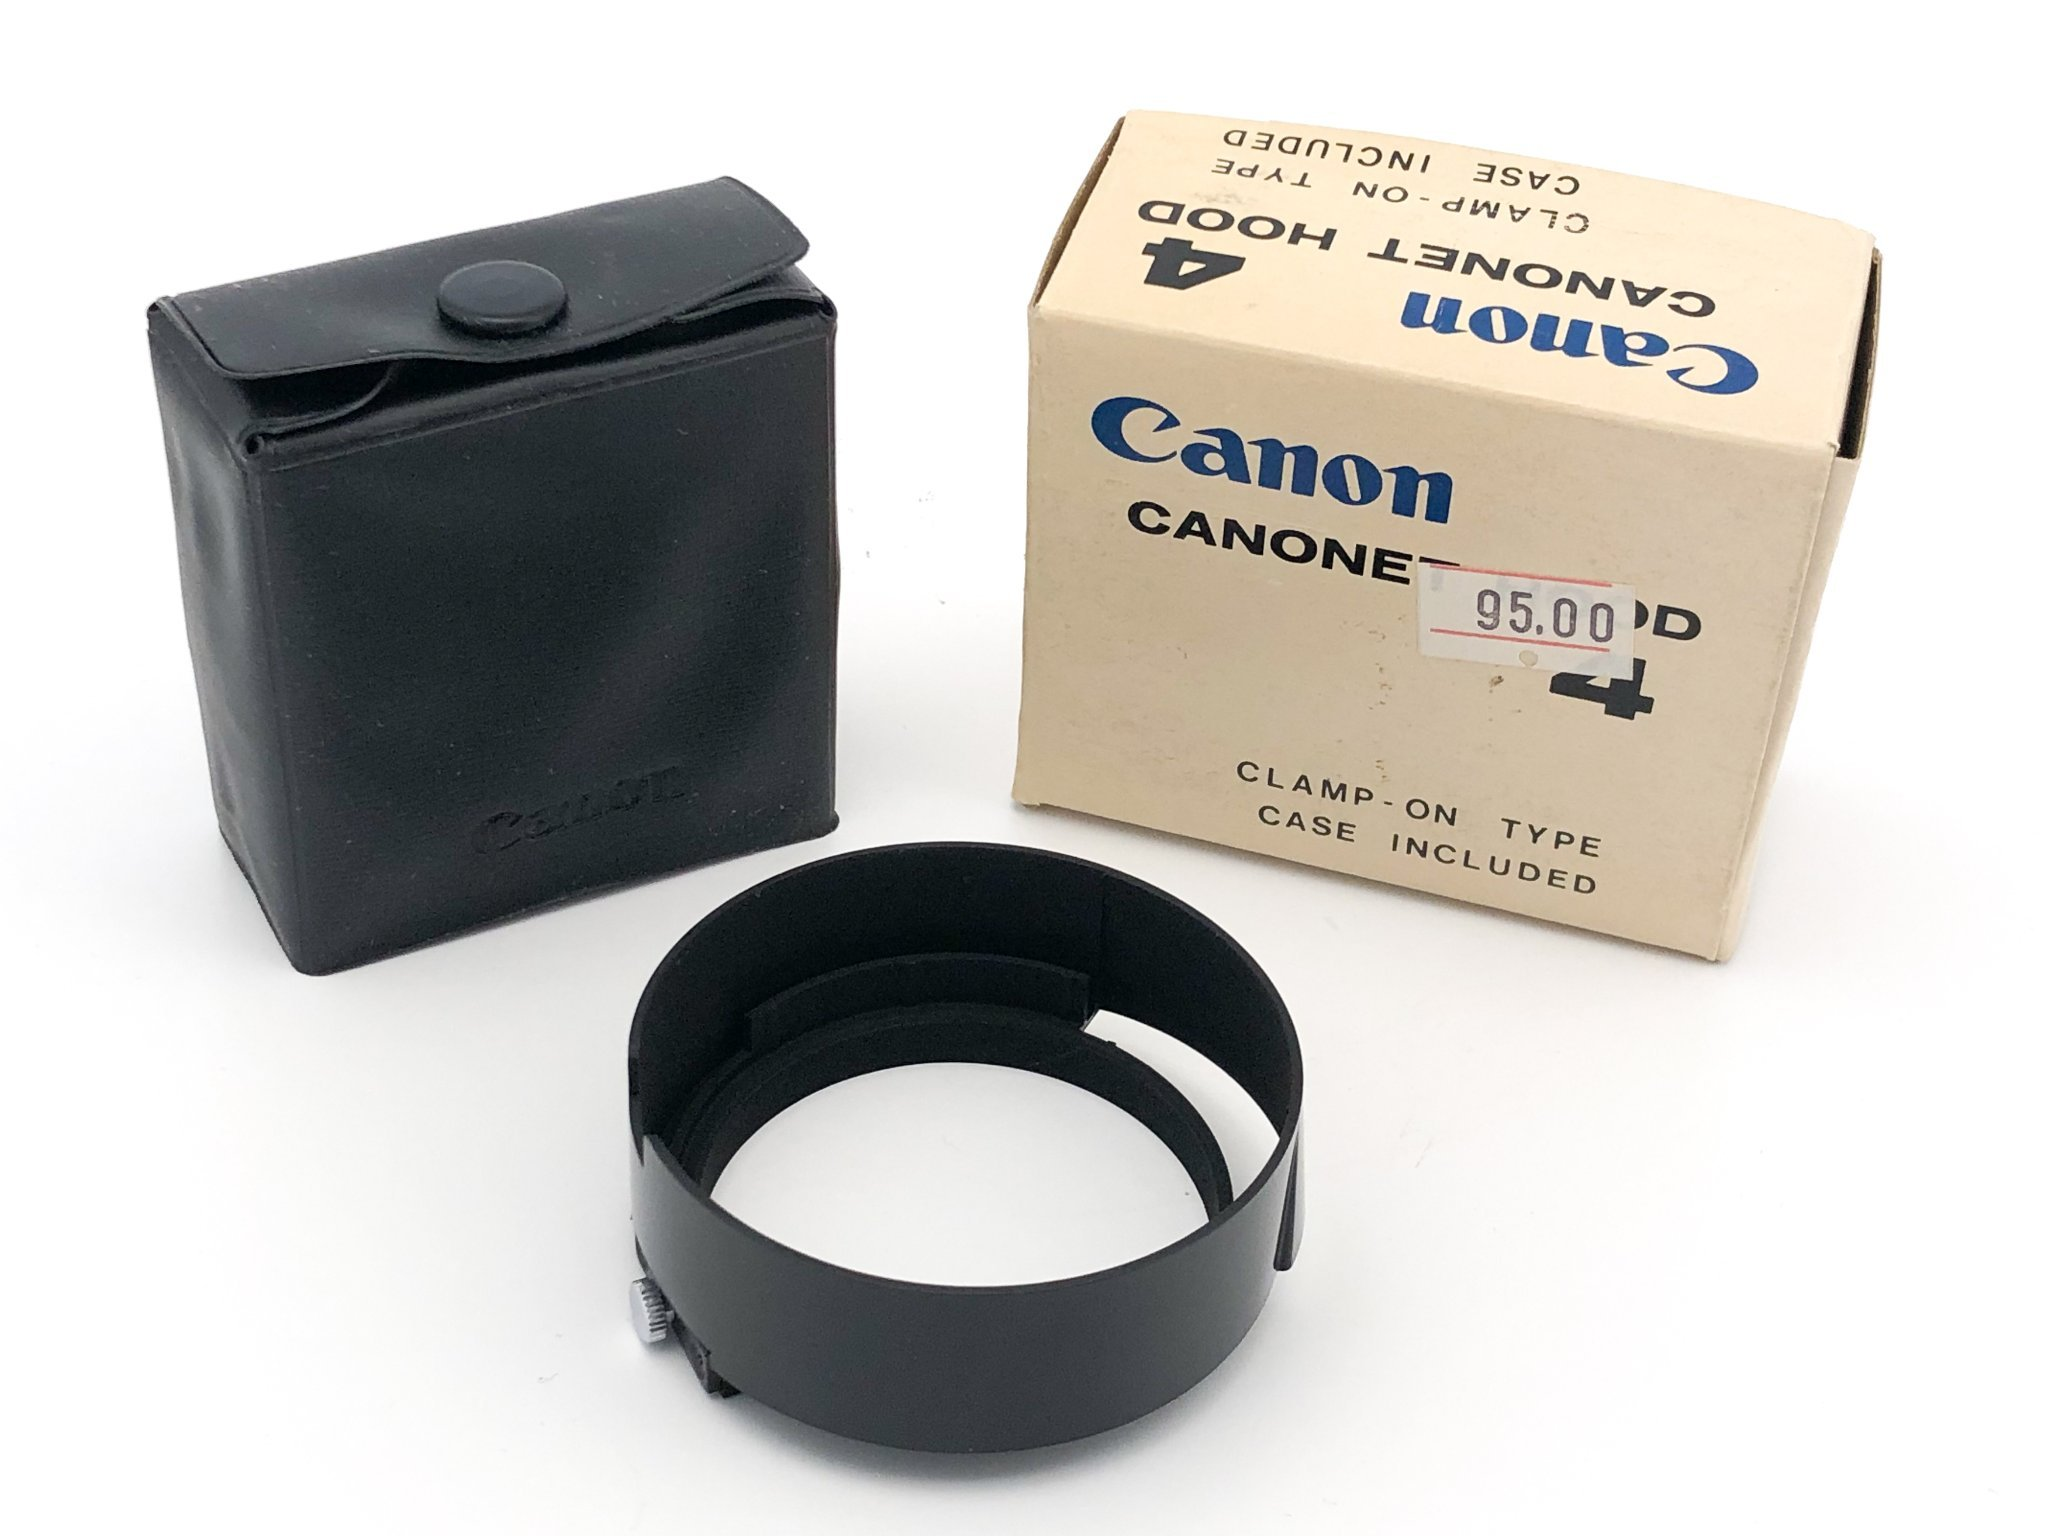 Canon Canonet 4 Lens Hood Motljusskydd NOS Made in Japan